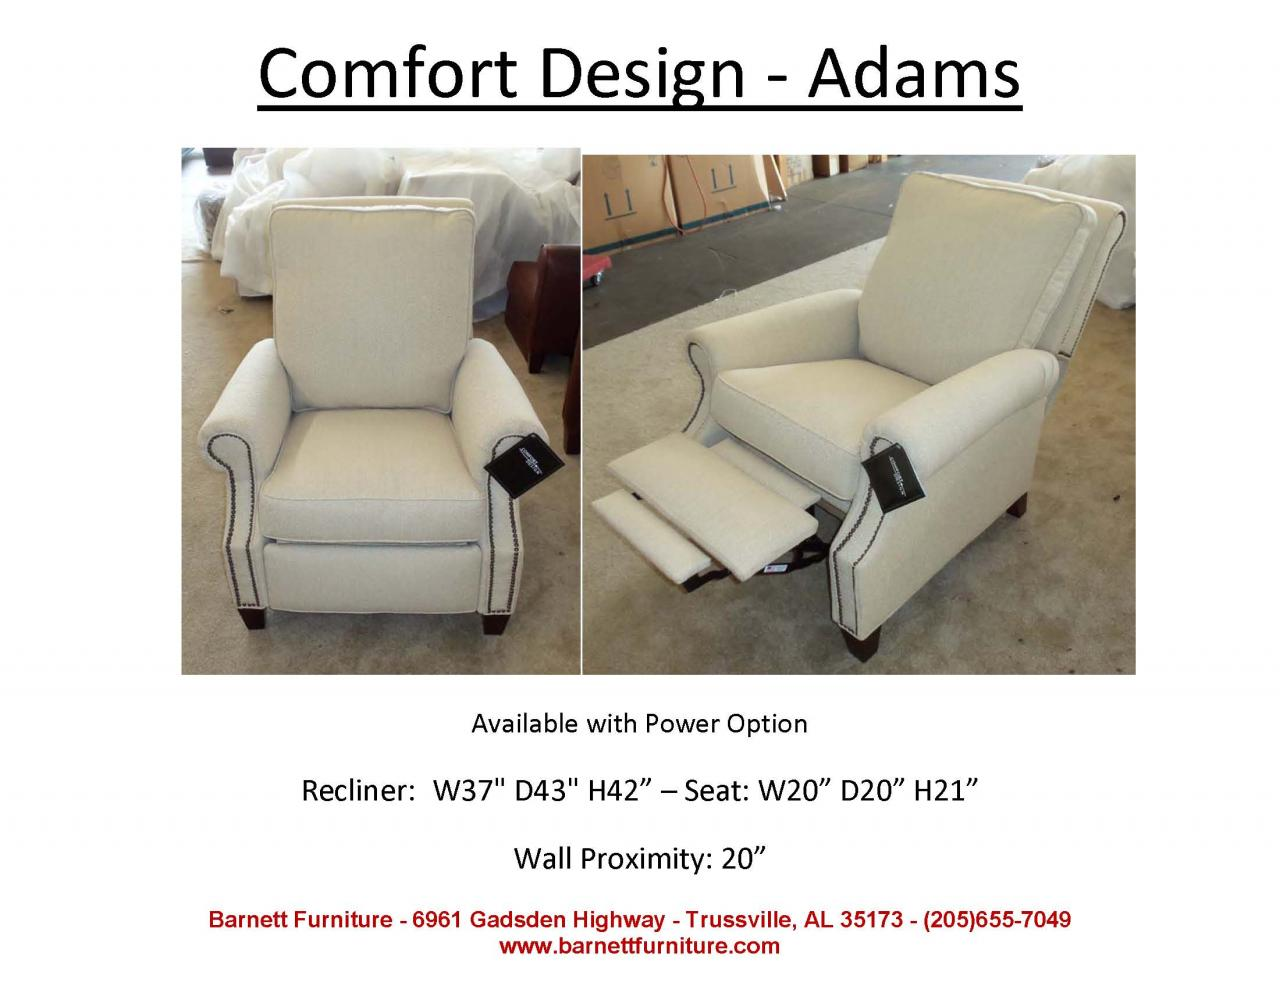 ... Comfort Design Adams Recliner ...  sc 1 st  Barnett Furniture & Barnett Furniture - recliners islam-shia.org